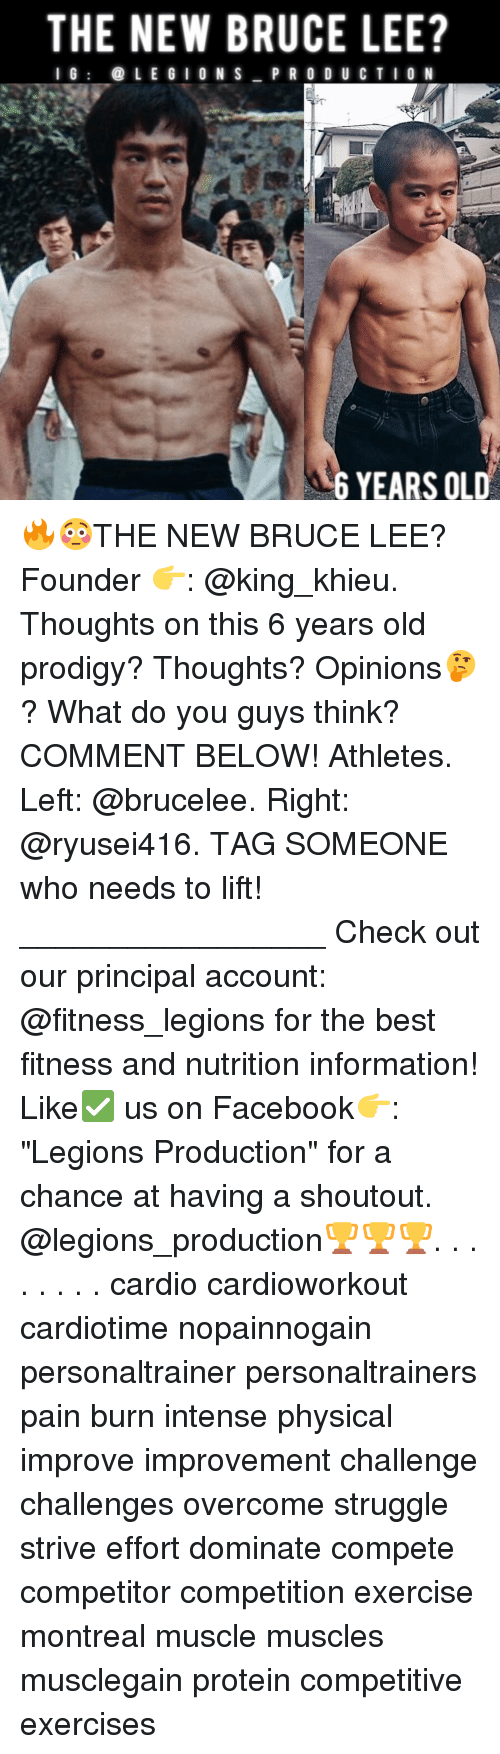 """Memes, Protein, and Struggle: THE NEW BRUCE LEE?  I G  (a LEGION S  PRODUCTION  6 YEARS OLD 🔥😳THE NEW BRUCE LEE? Founder 👉: @king_khieu. Thoughts on this 6 years old prodigy? Thoughts? Opinions🤔? What do you guys think? COMMENT BELOW! Athletes. Left: @brucelee. Right: @ryusei416. TAG SOMEONE who needs to lift! _________________ Check out our principal account: @fitness_legions for the best fitness and nutrition information! Like✅ us on Facebook👉: """"Legions Production"""" for a chance at having a shoutout. @legions_production🏆🏆🏆. . . . . . . . cardio cardioworkout cardiotime nopainnogain personaltrainer personaltrainers pain burn intense physical improve improvement challenge challenges overcome struggle strive effort dominate compete competitor competition exercise montreal muscle muscles musclegain protein competitive exercises"""